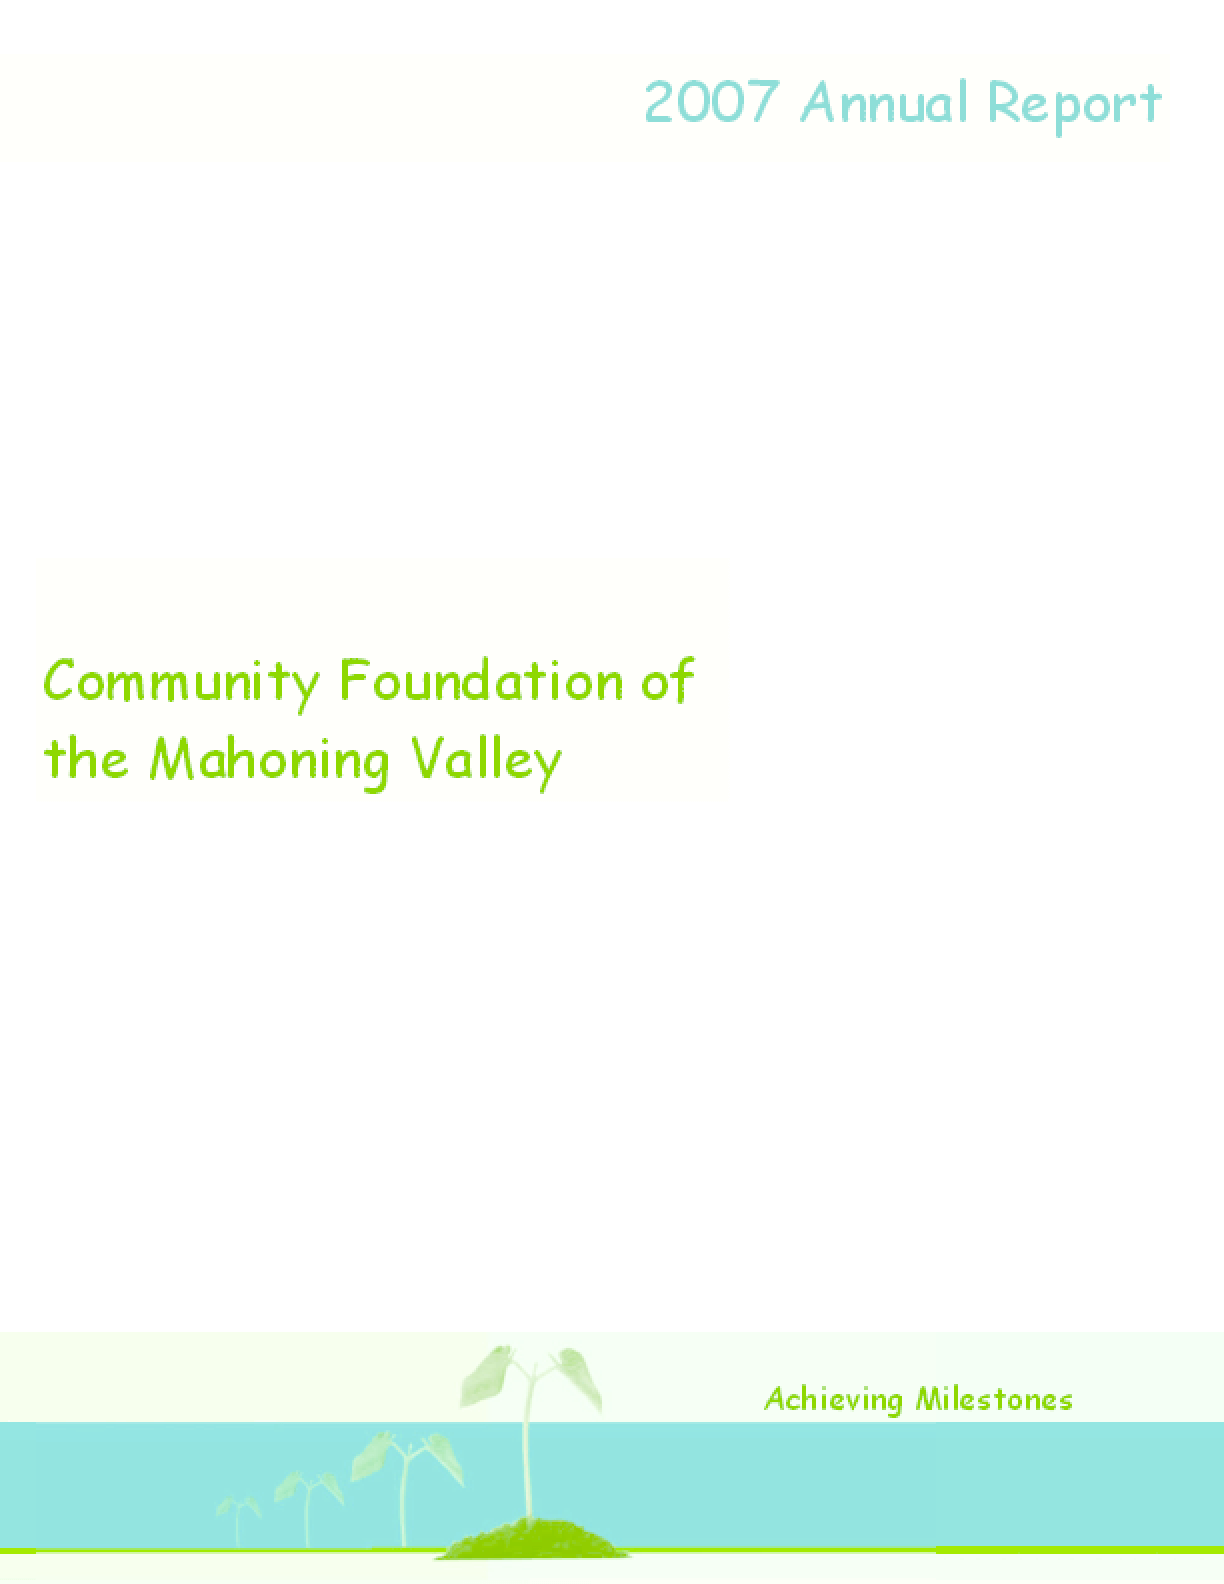 Community Foundation of the Mahoning Valley - 2007 Annual Report